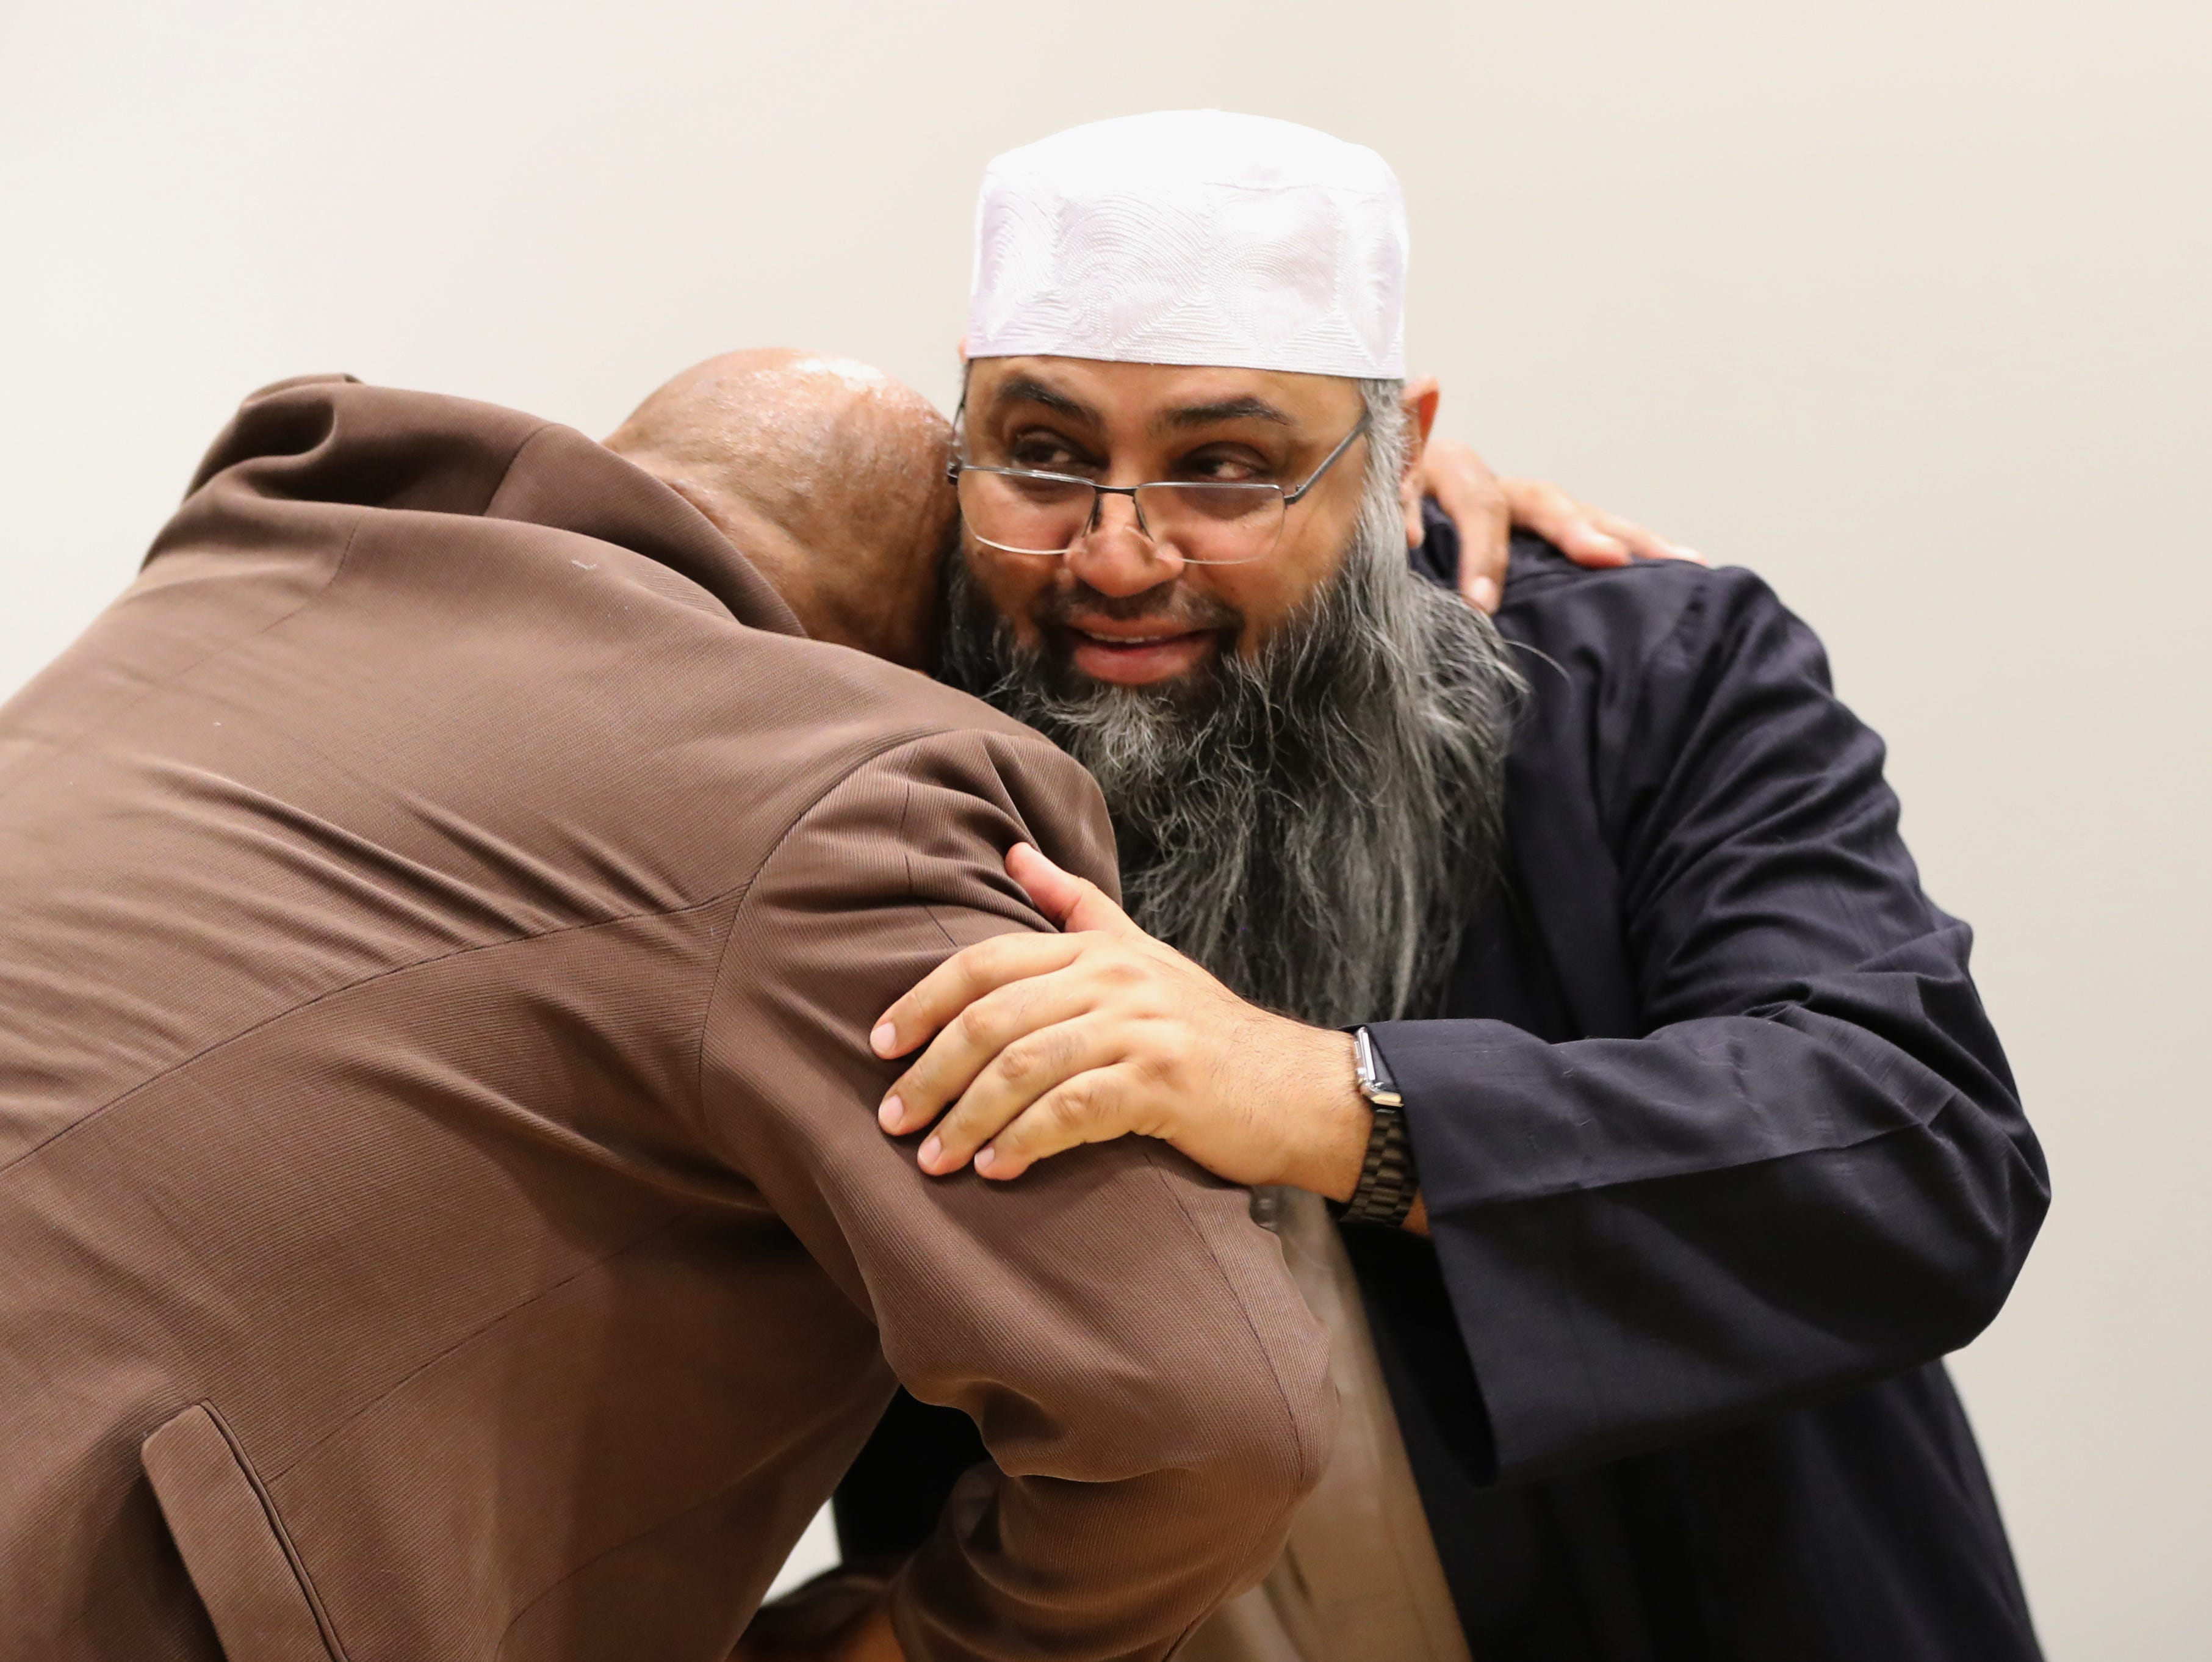 Minister Wesley King hugs Imam Syed Ali after the Interfaith Symposium held at Rockland Community College March 20, 2019.